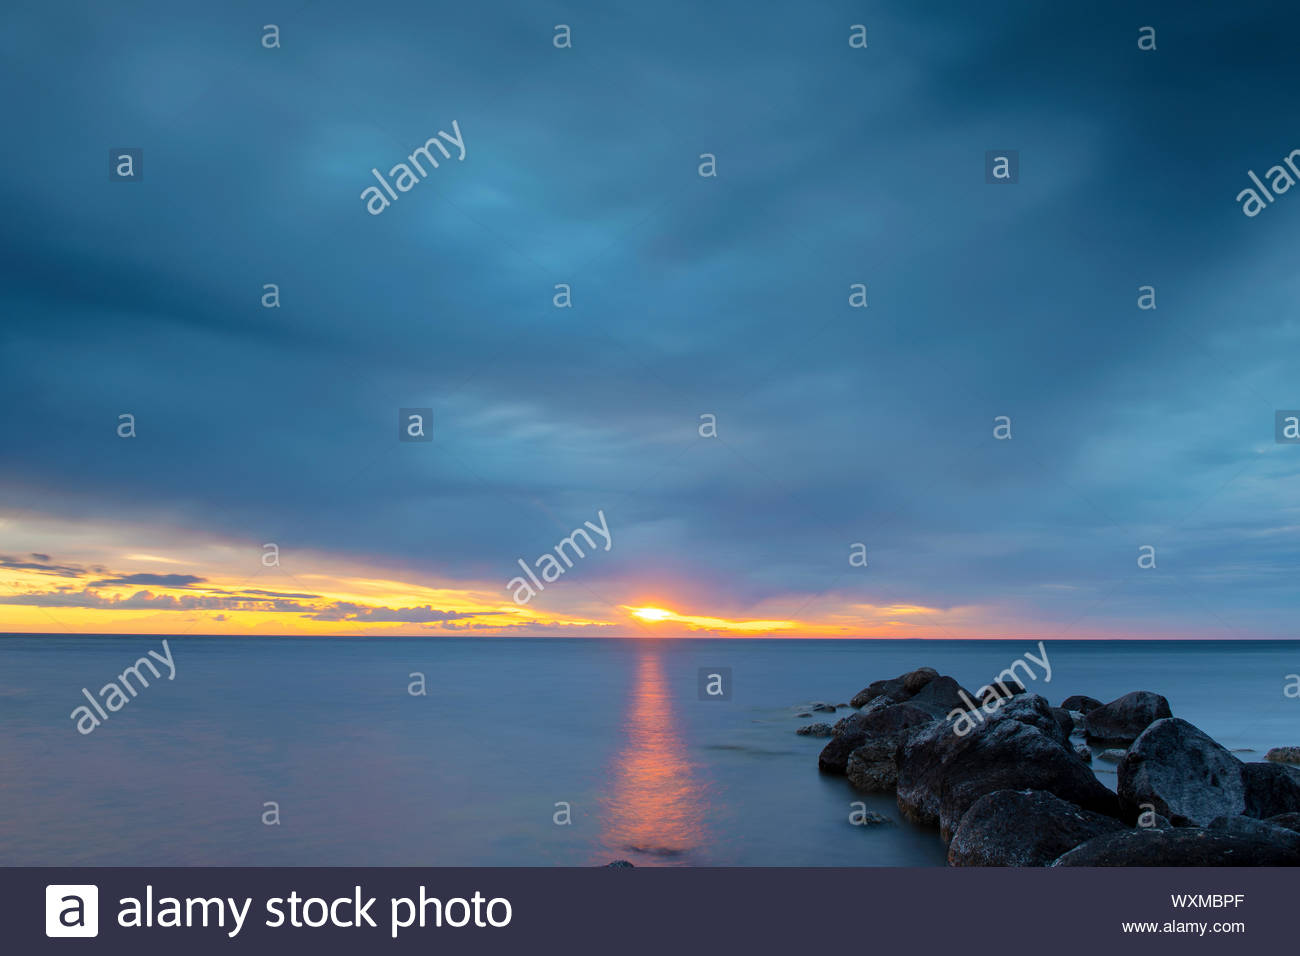 Calm Peaceful Ocean After Sunset Stock Photo